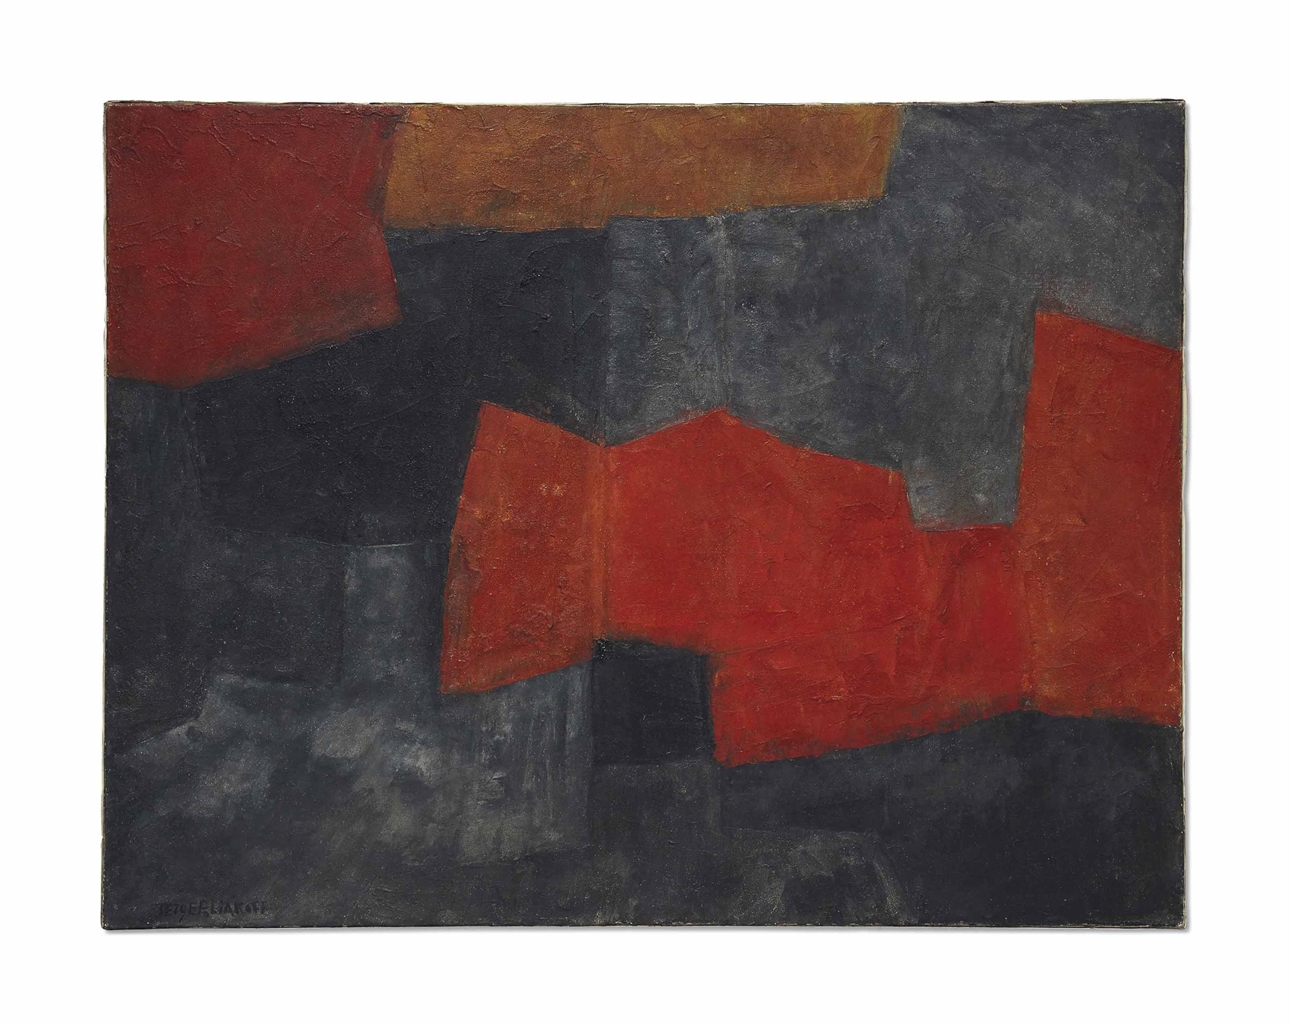 Serge Poliakoff-Composition Abstraite Gris, Orange Et Rouge-1964